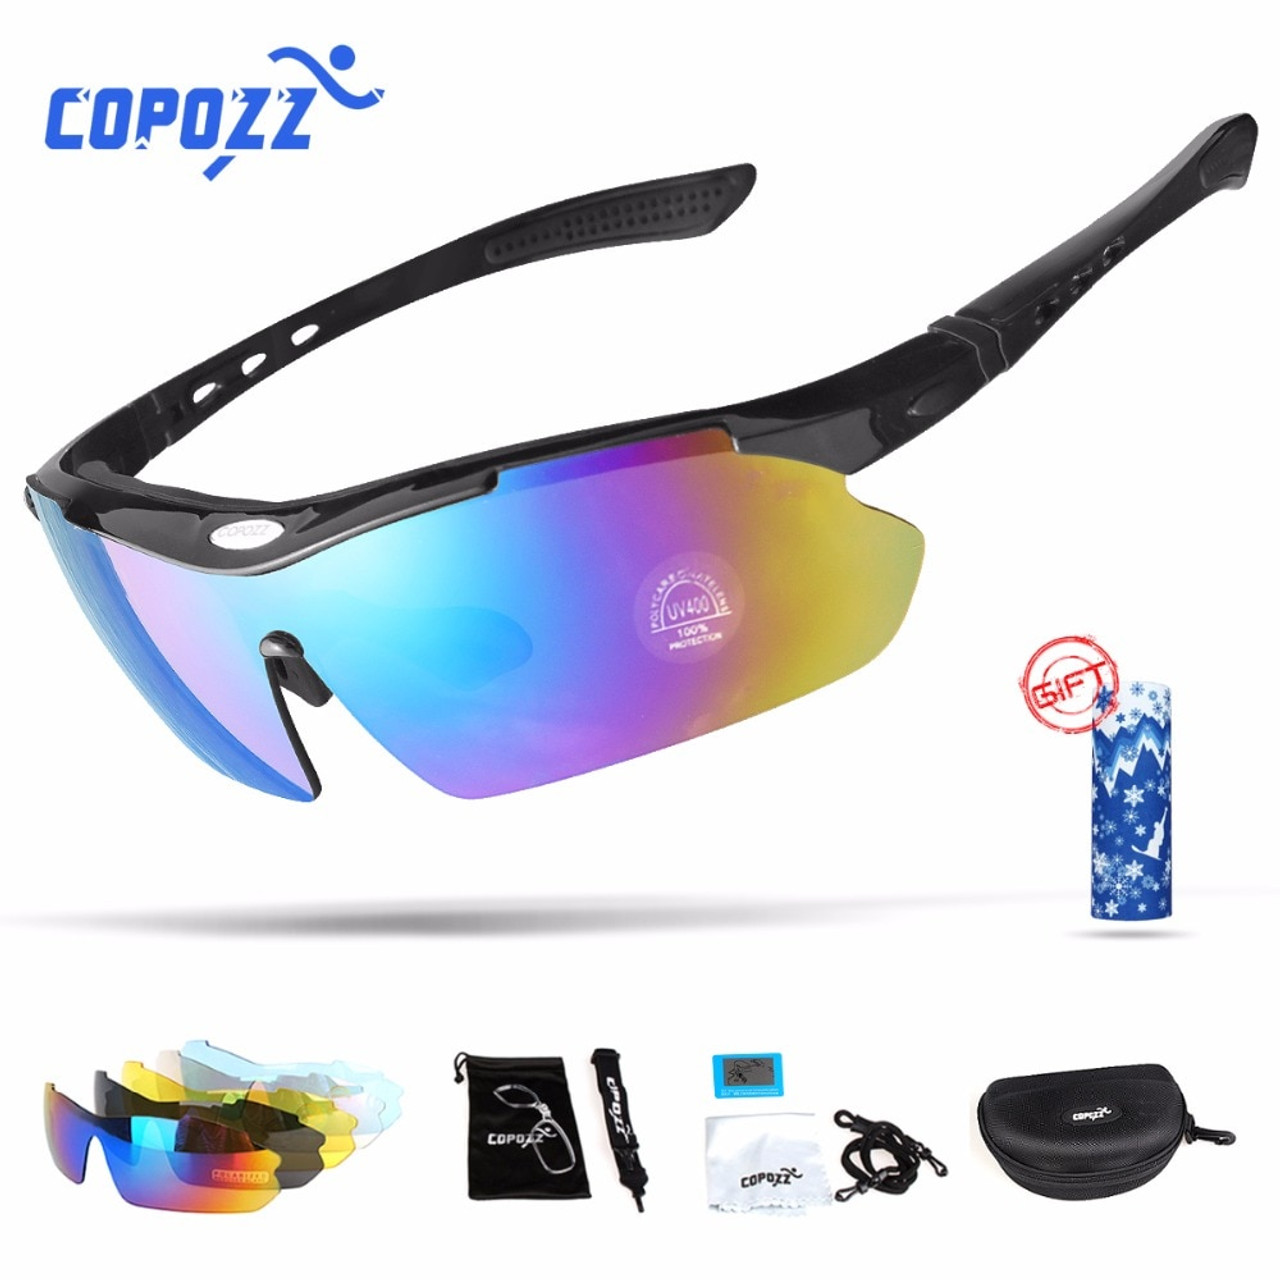 95c5c05fba Copozz Polarized Cycling Glasses Outdoor MTB Mountain Goggles Eyewear  Bicycle Sun Glasses Bike Sport Sunglasses Myopia ...